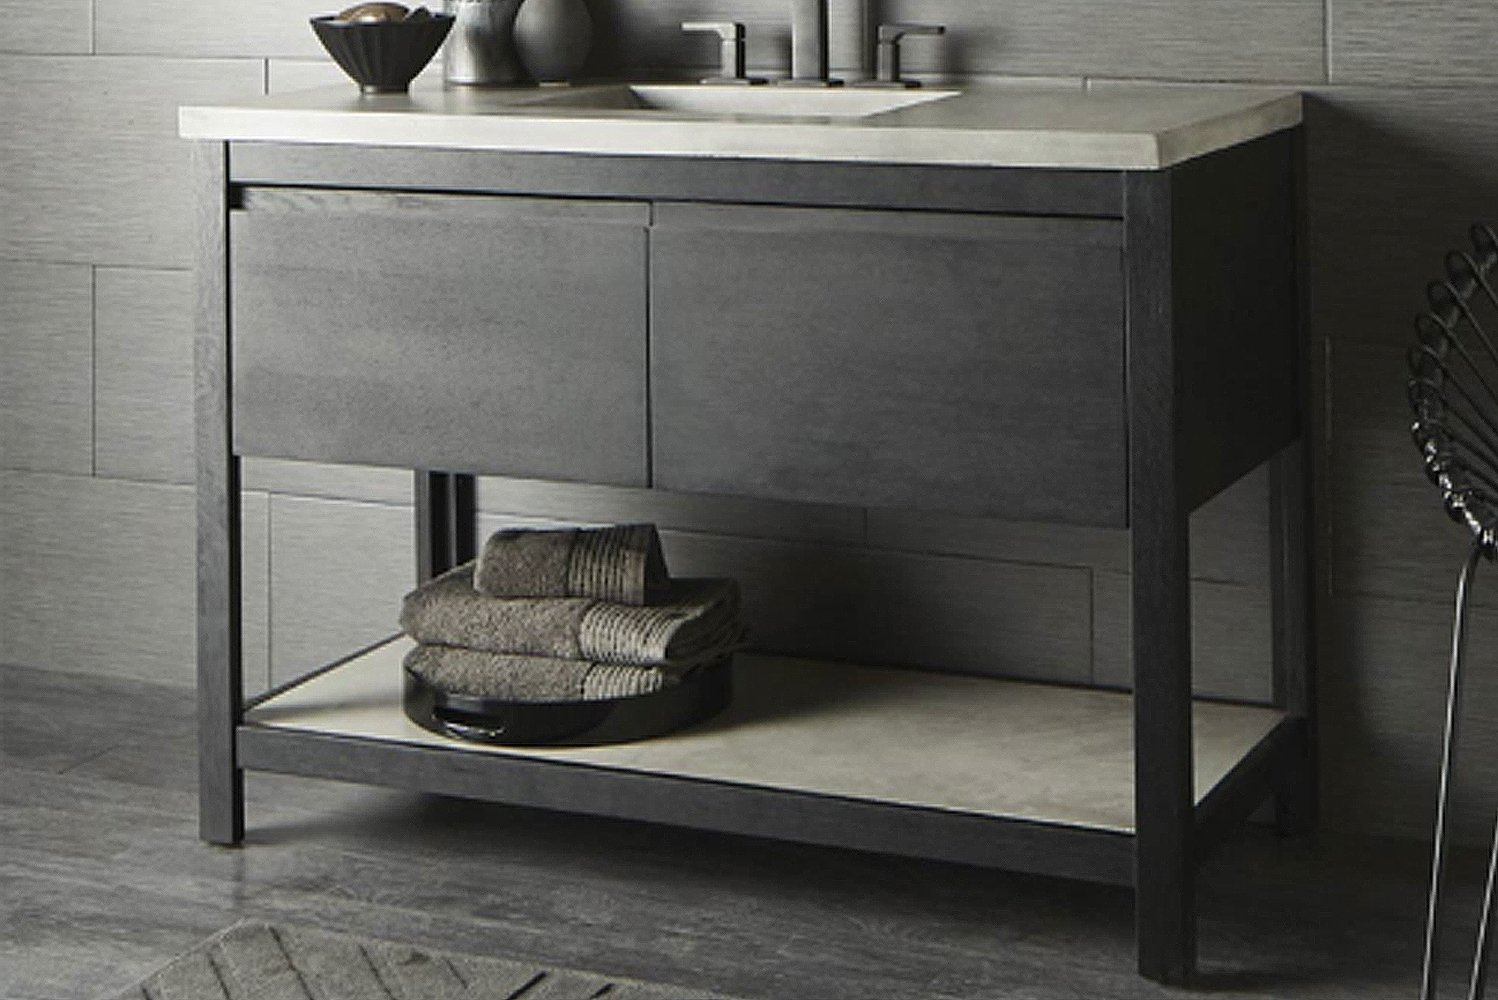 New to Native Trails' portfolio is an oak vanity series with coordinating mirrors.